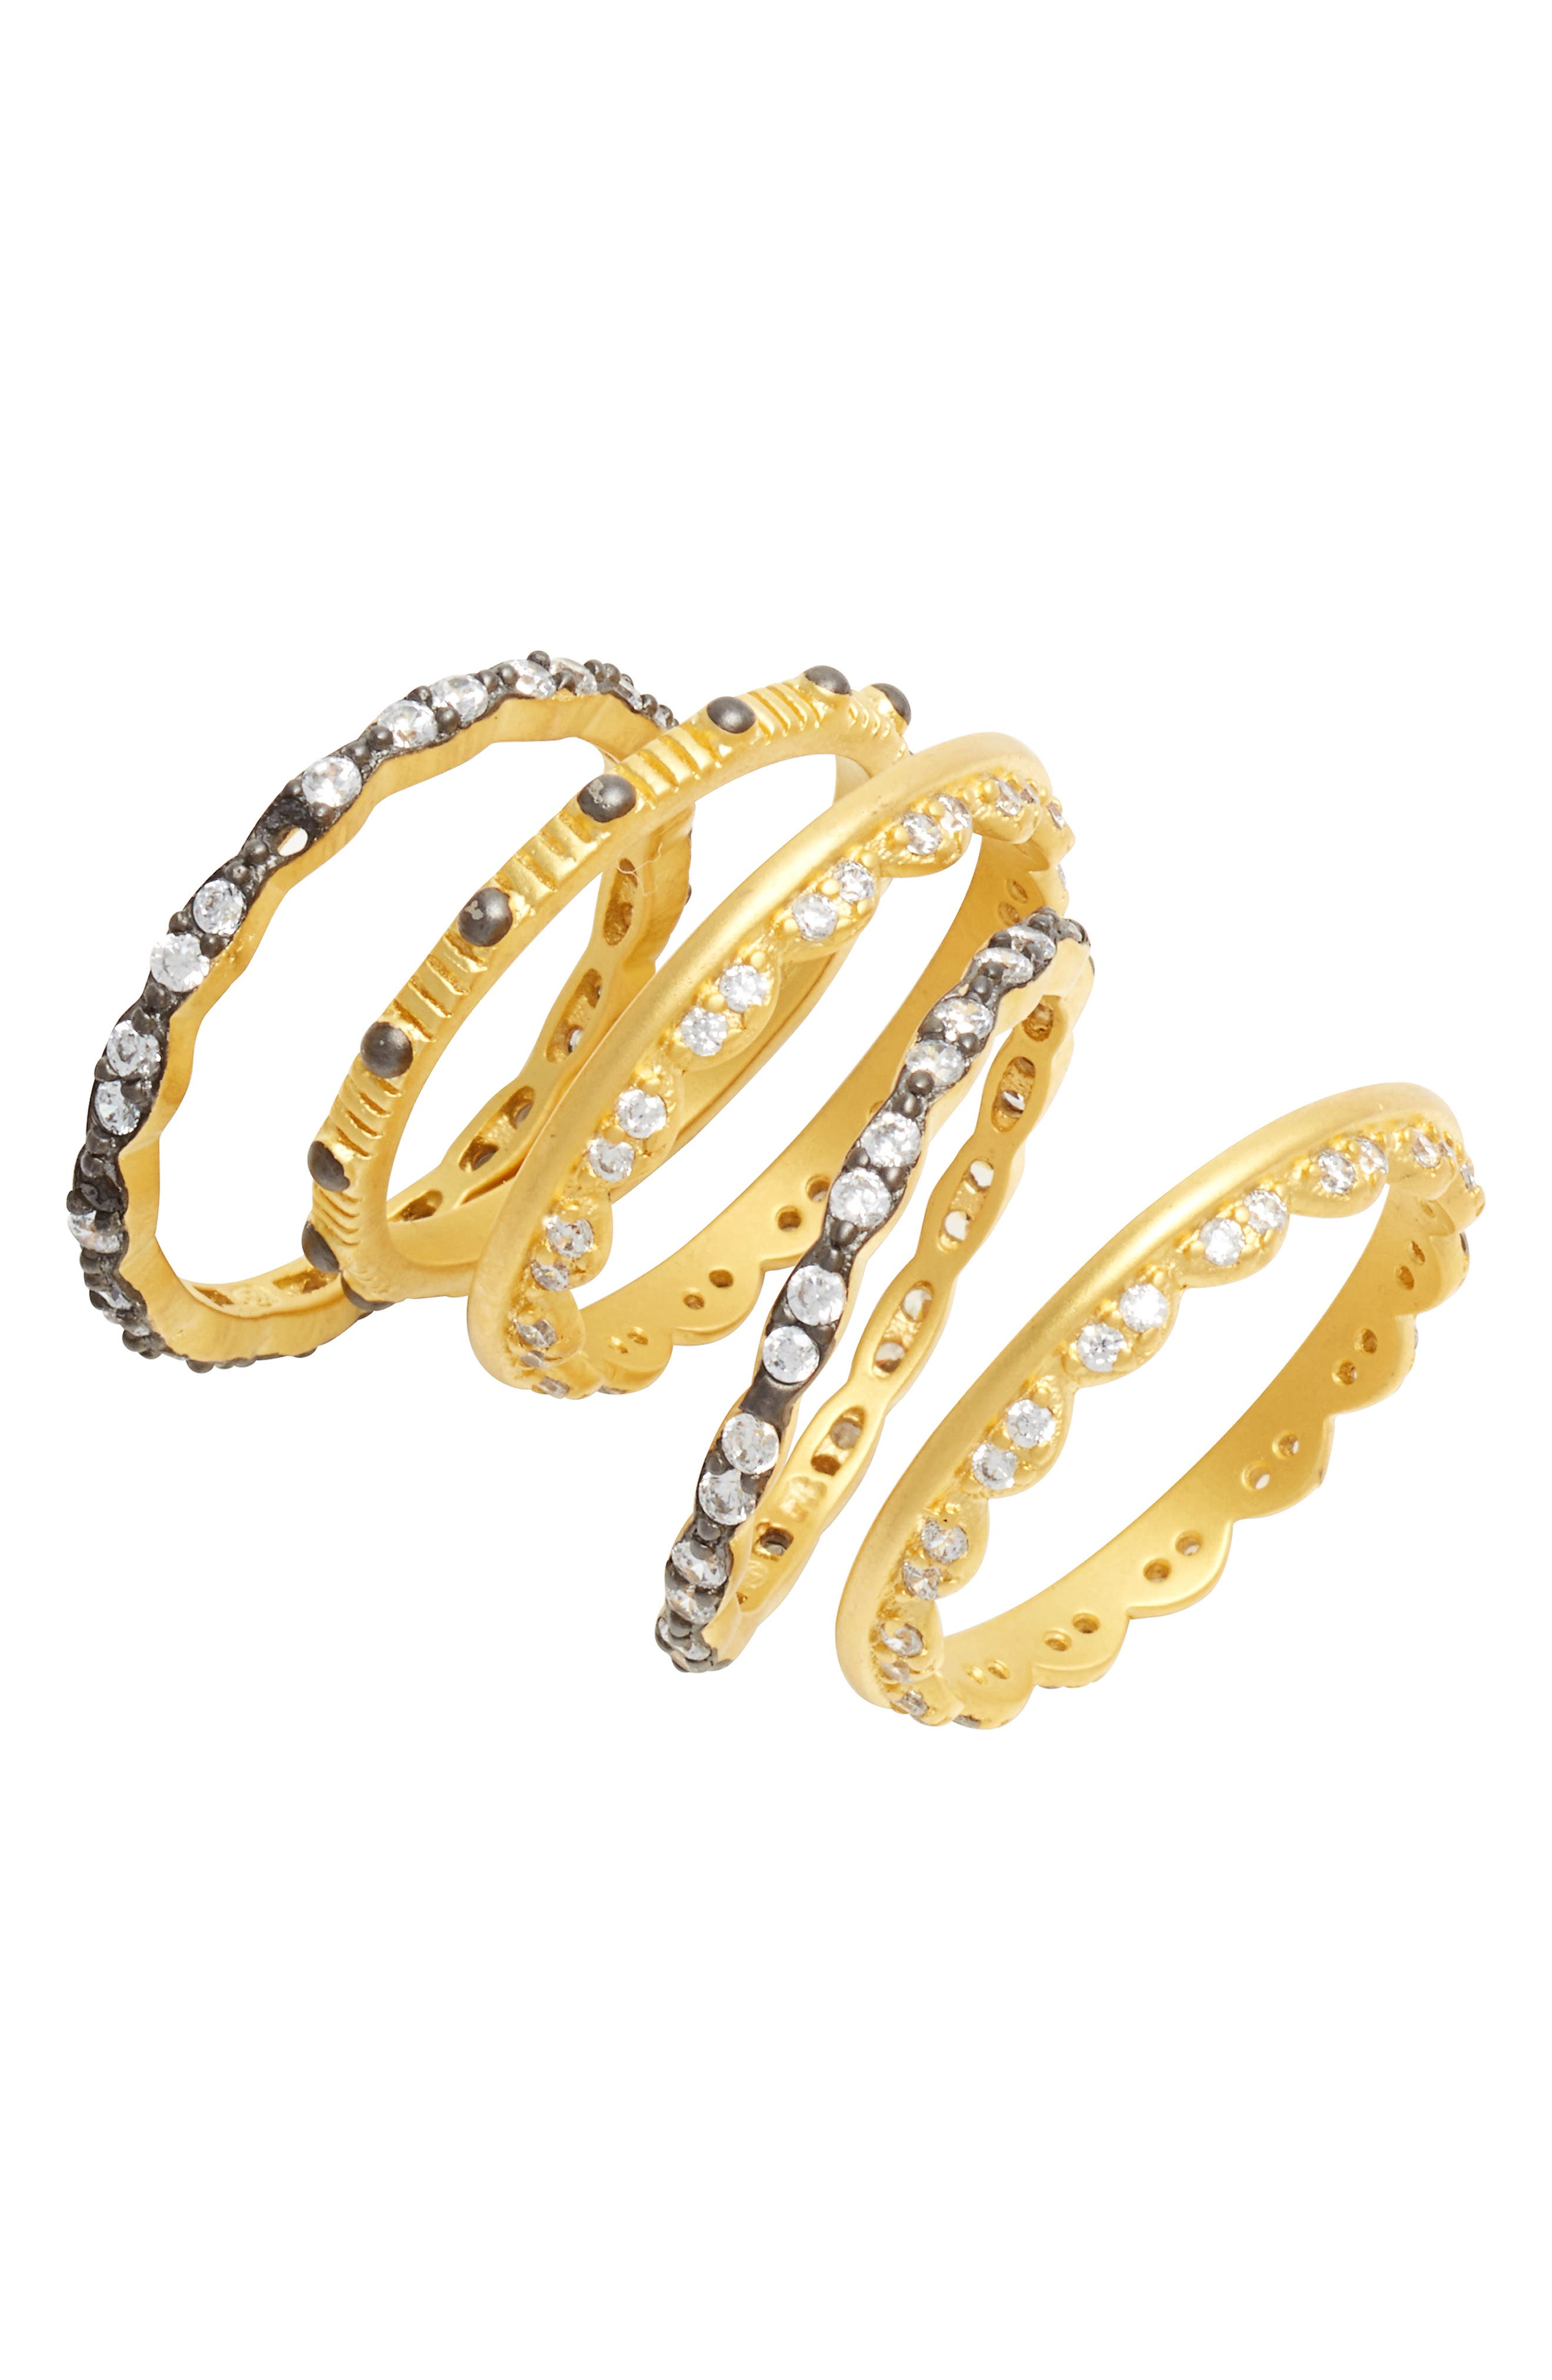 Set of 5 Stack Rings,                         Main,                         color, Gold/ Black Rhodium